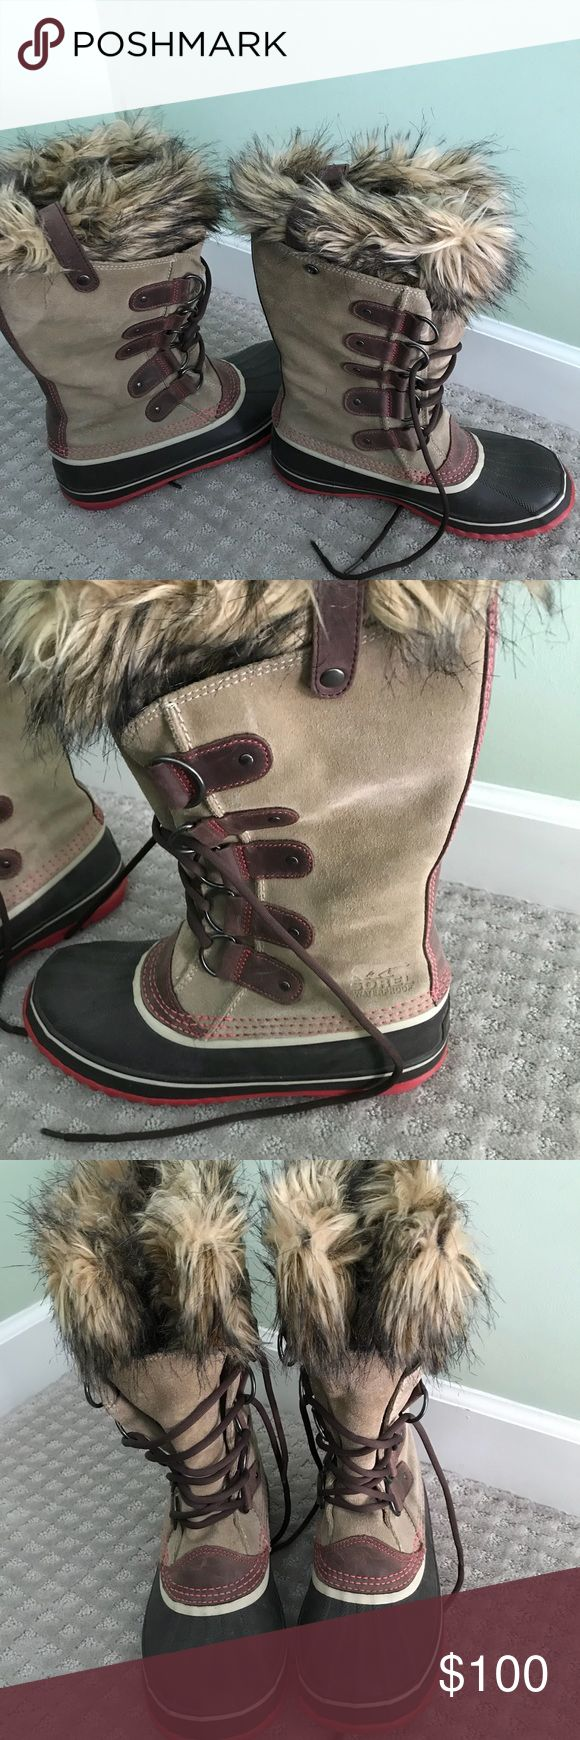 Sorel Joan of Arc Boot Sorel suede and waterproof Joan of Arc boot (worn 2x) Sorel Shoes Winter & Rain Boots